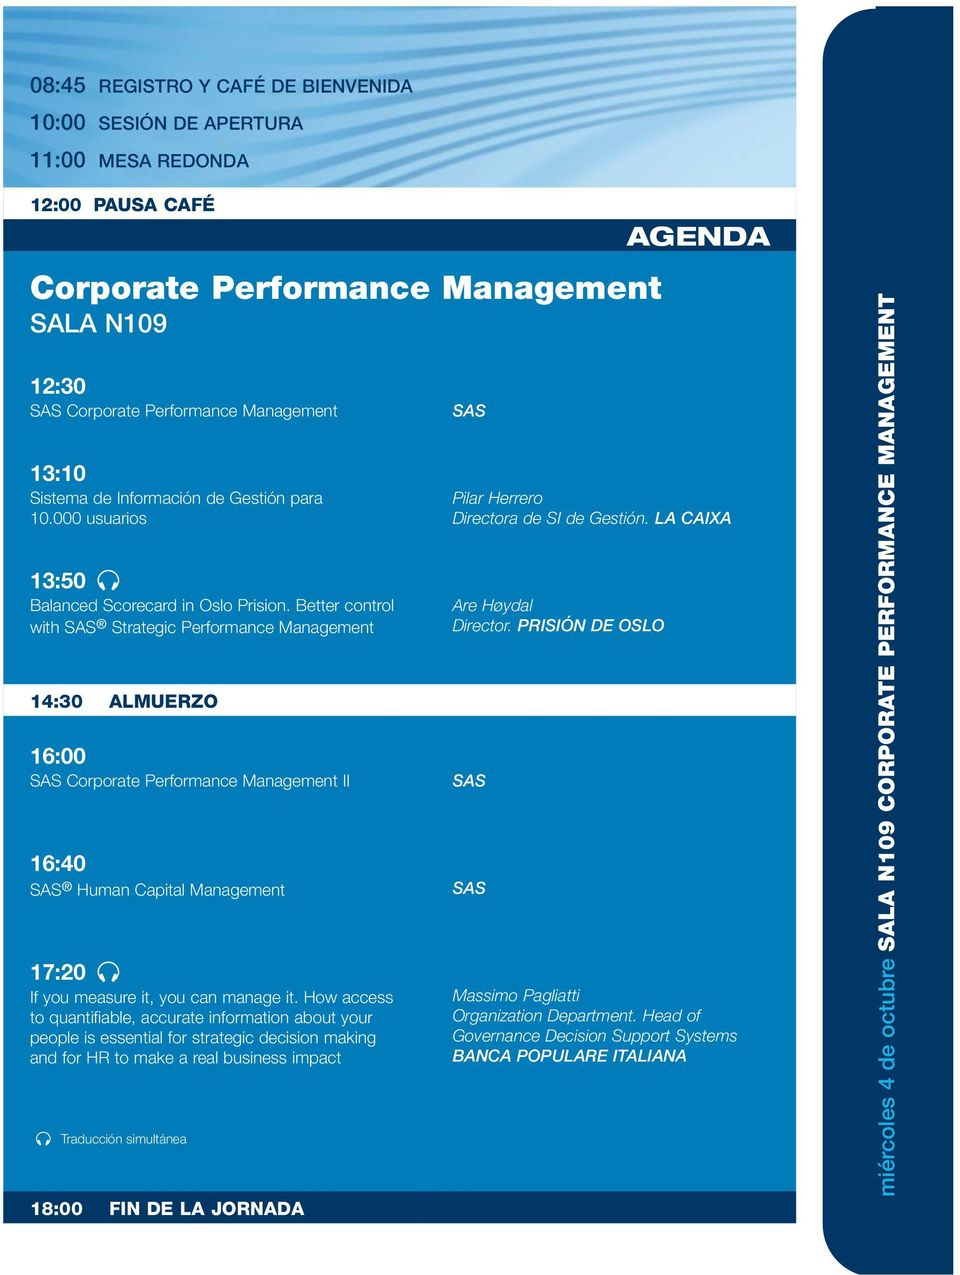 Better control with Strategic Performance Management 14:30 ALMUERZO 16:00 Corporate Performance Management II 16:40 Human Capital Management 17:20 If you measure it, you can manage it.